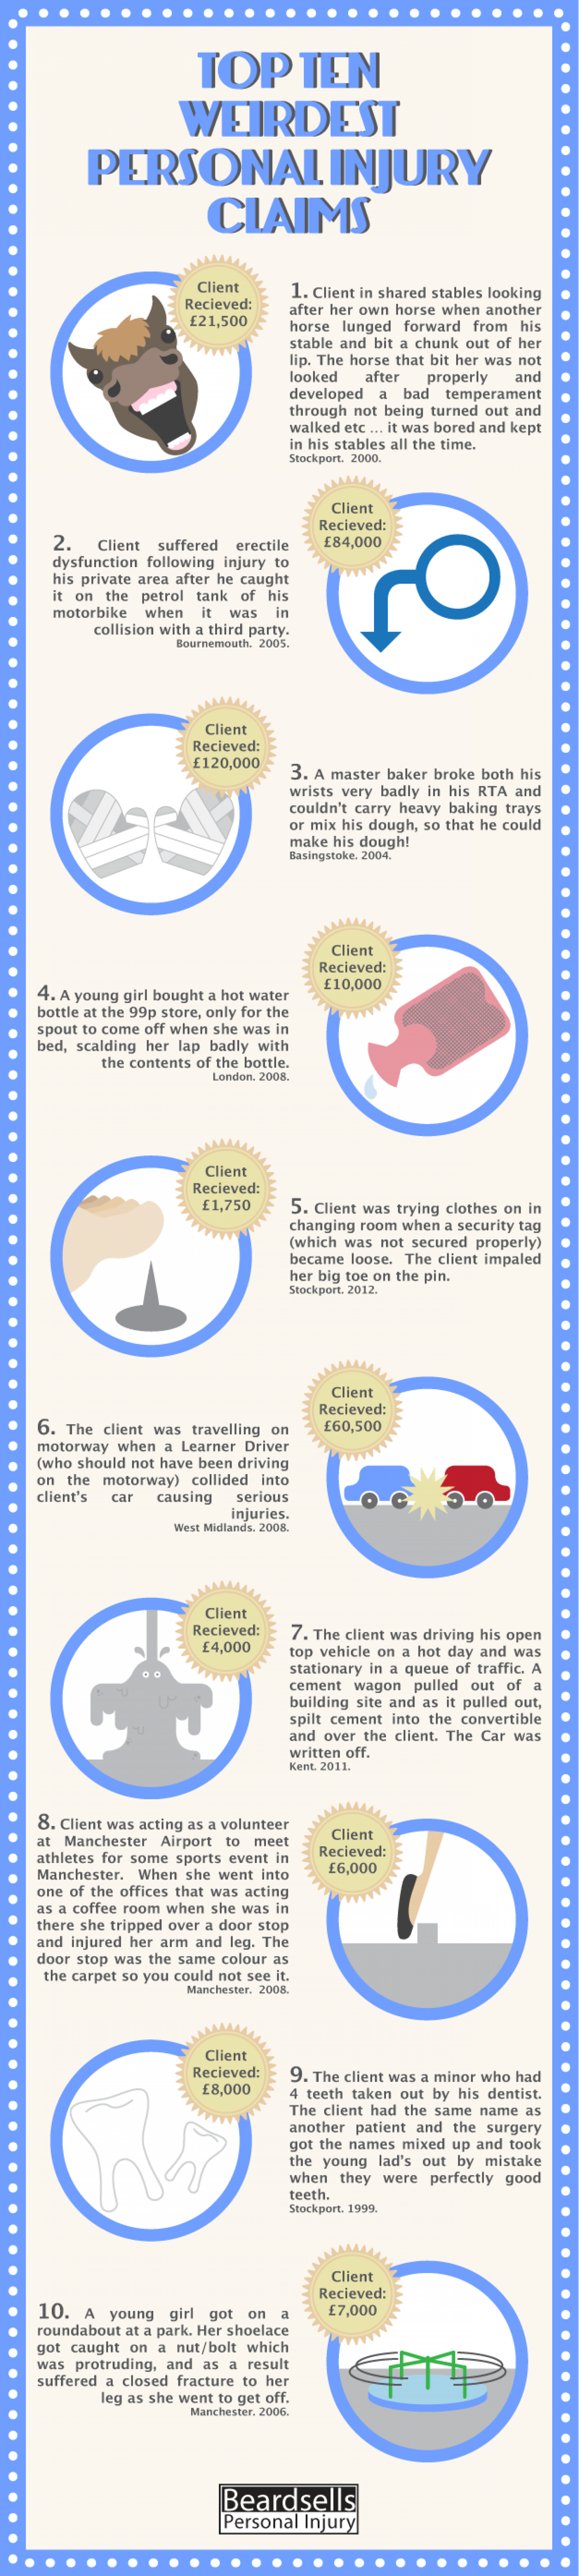 Top Ten Weirdest Personal Injury Claims Infographic